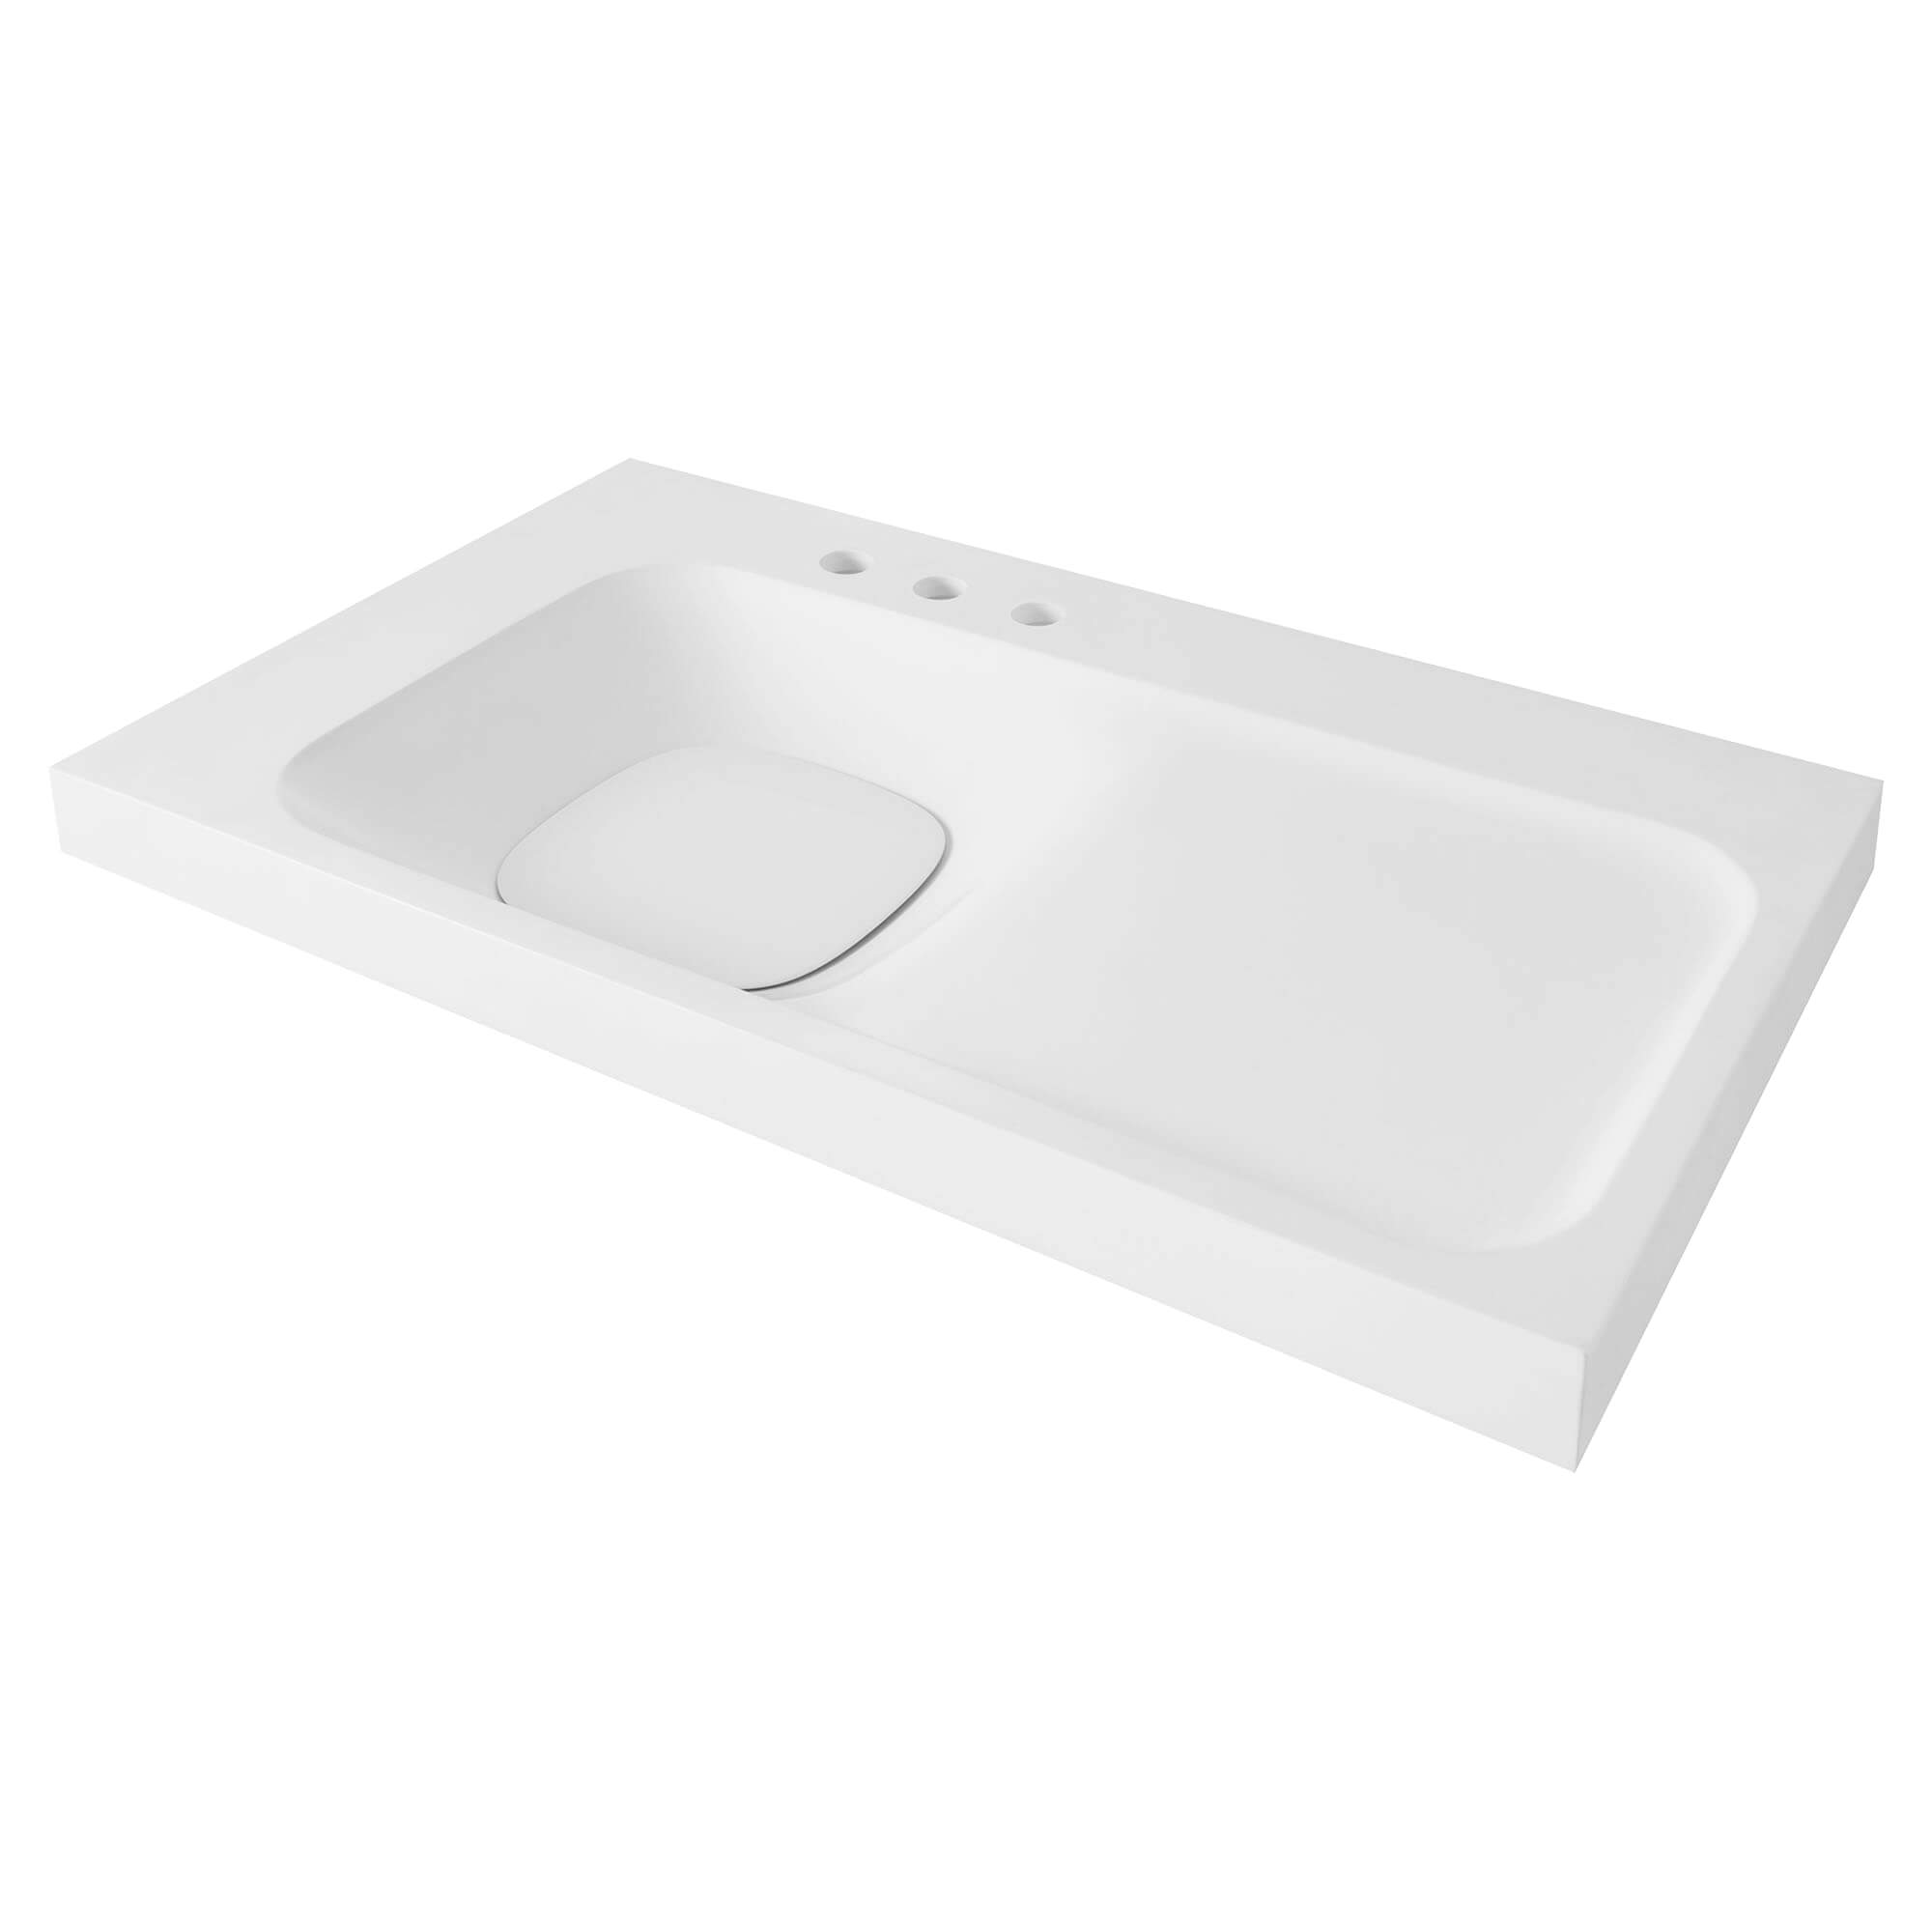 DXV Modulus 36-inch Three-Hole Bathroom Sink